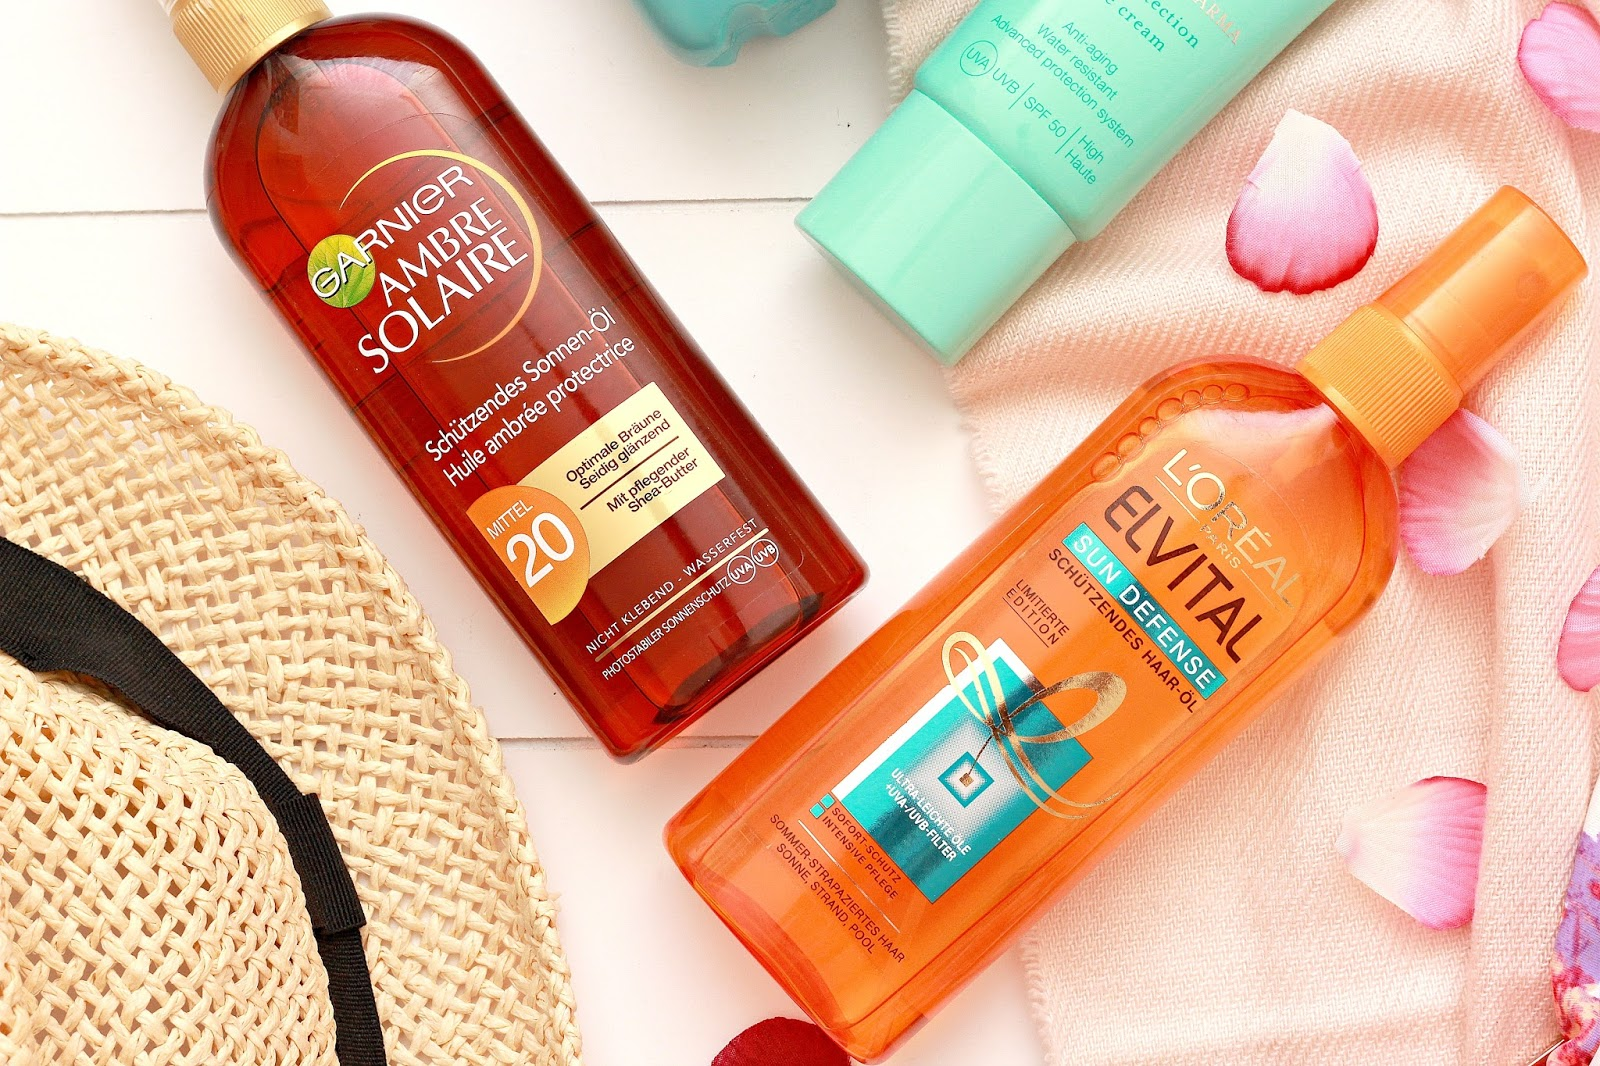 Sun Protection for Hair & Skin